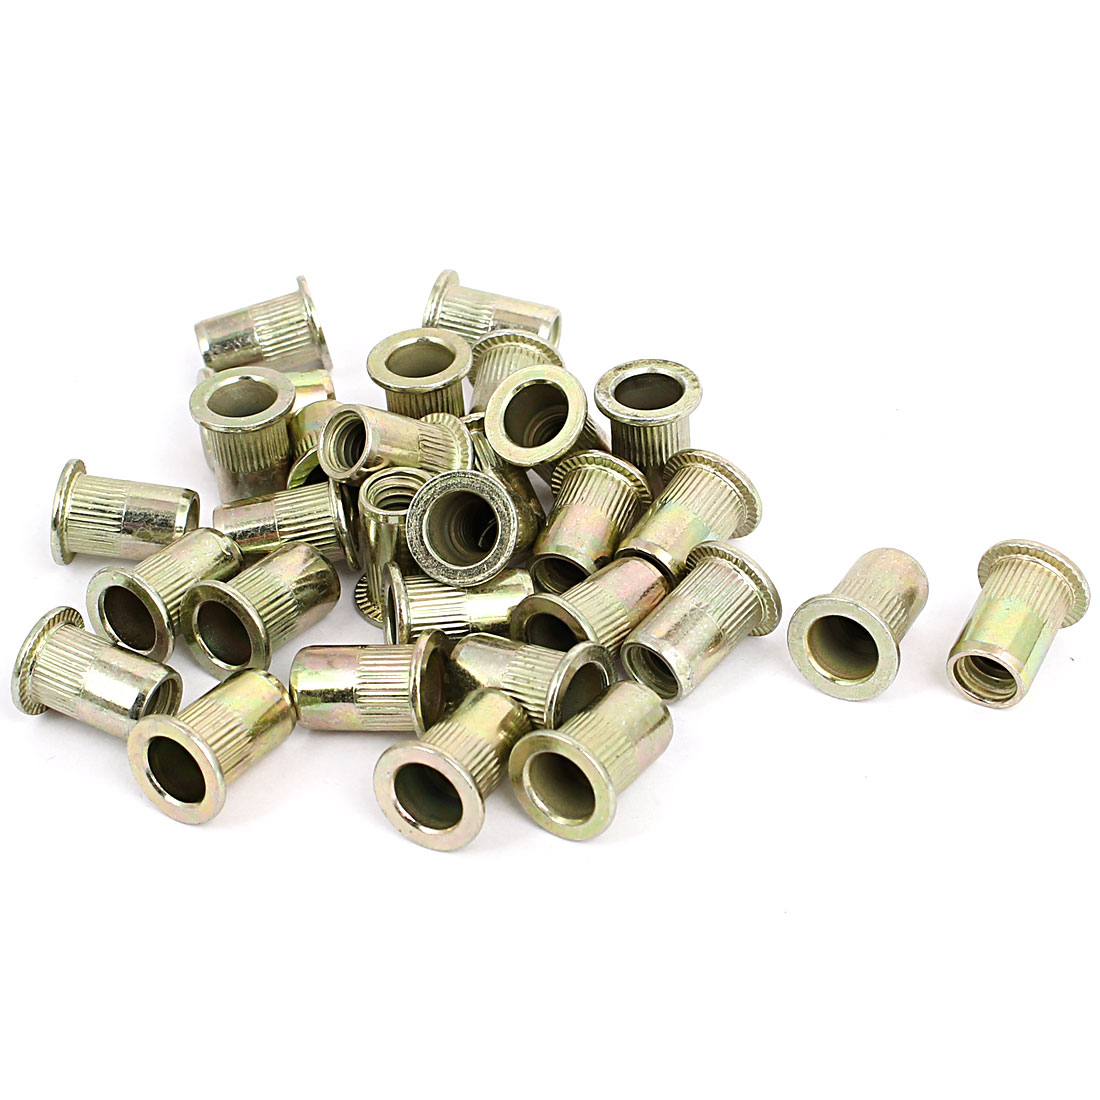 "5/16"" Thread 18mm Long Rivet Nut Insert Nutsert 30pcs"